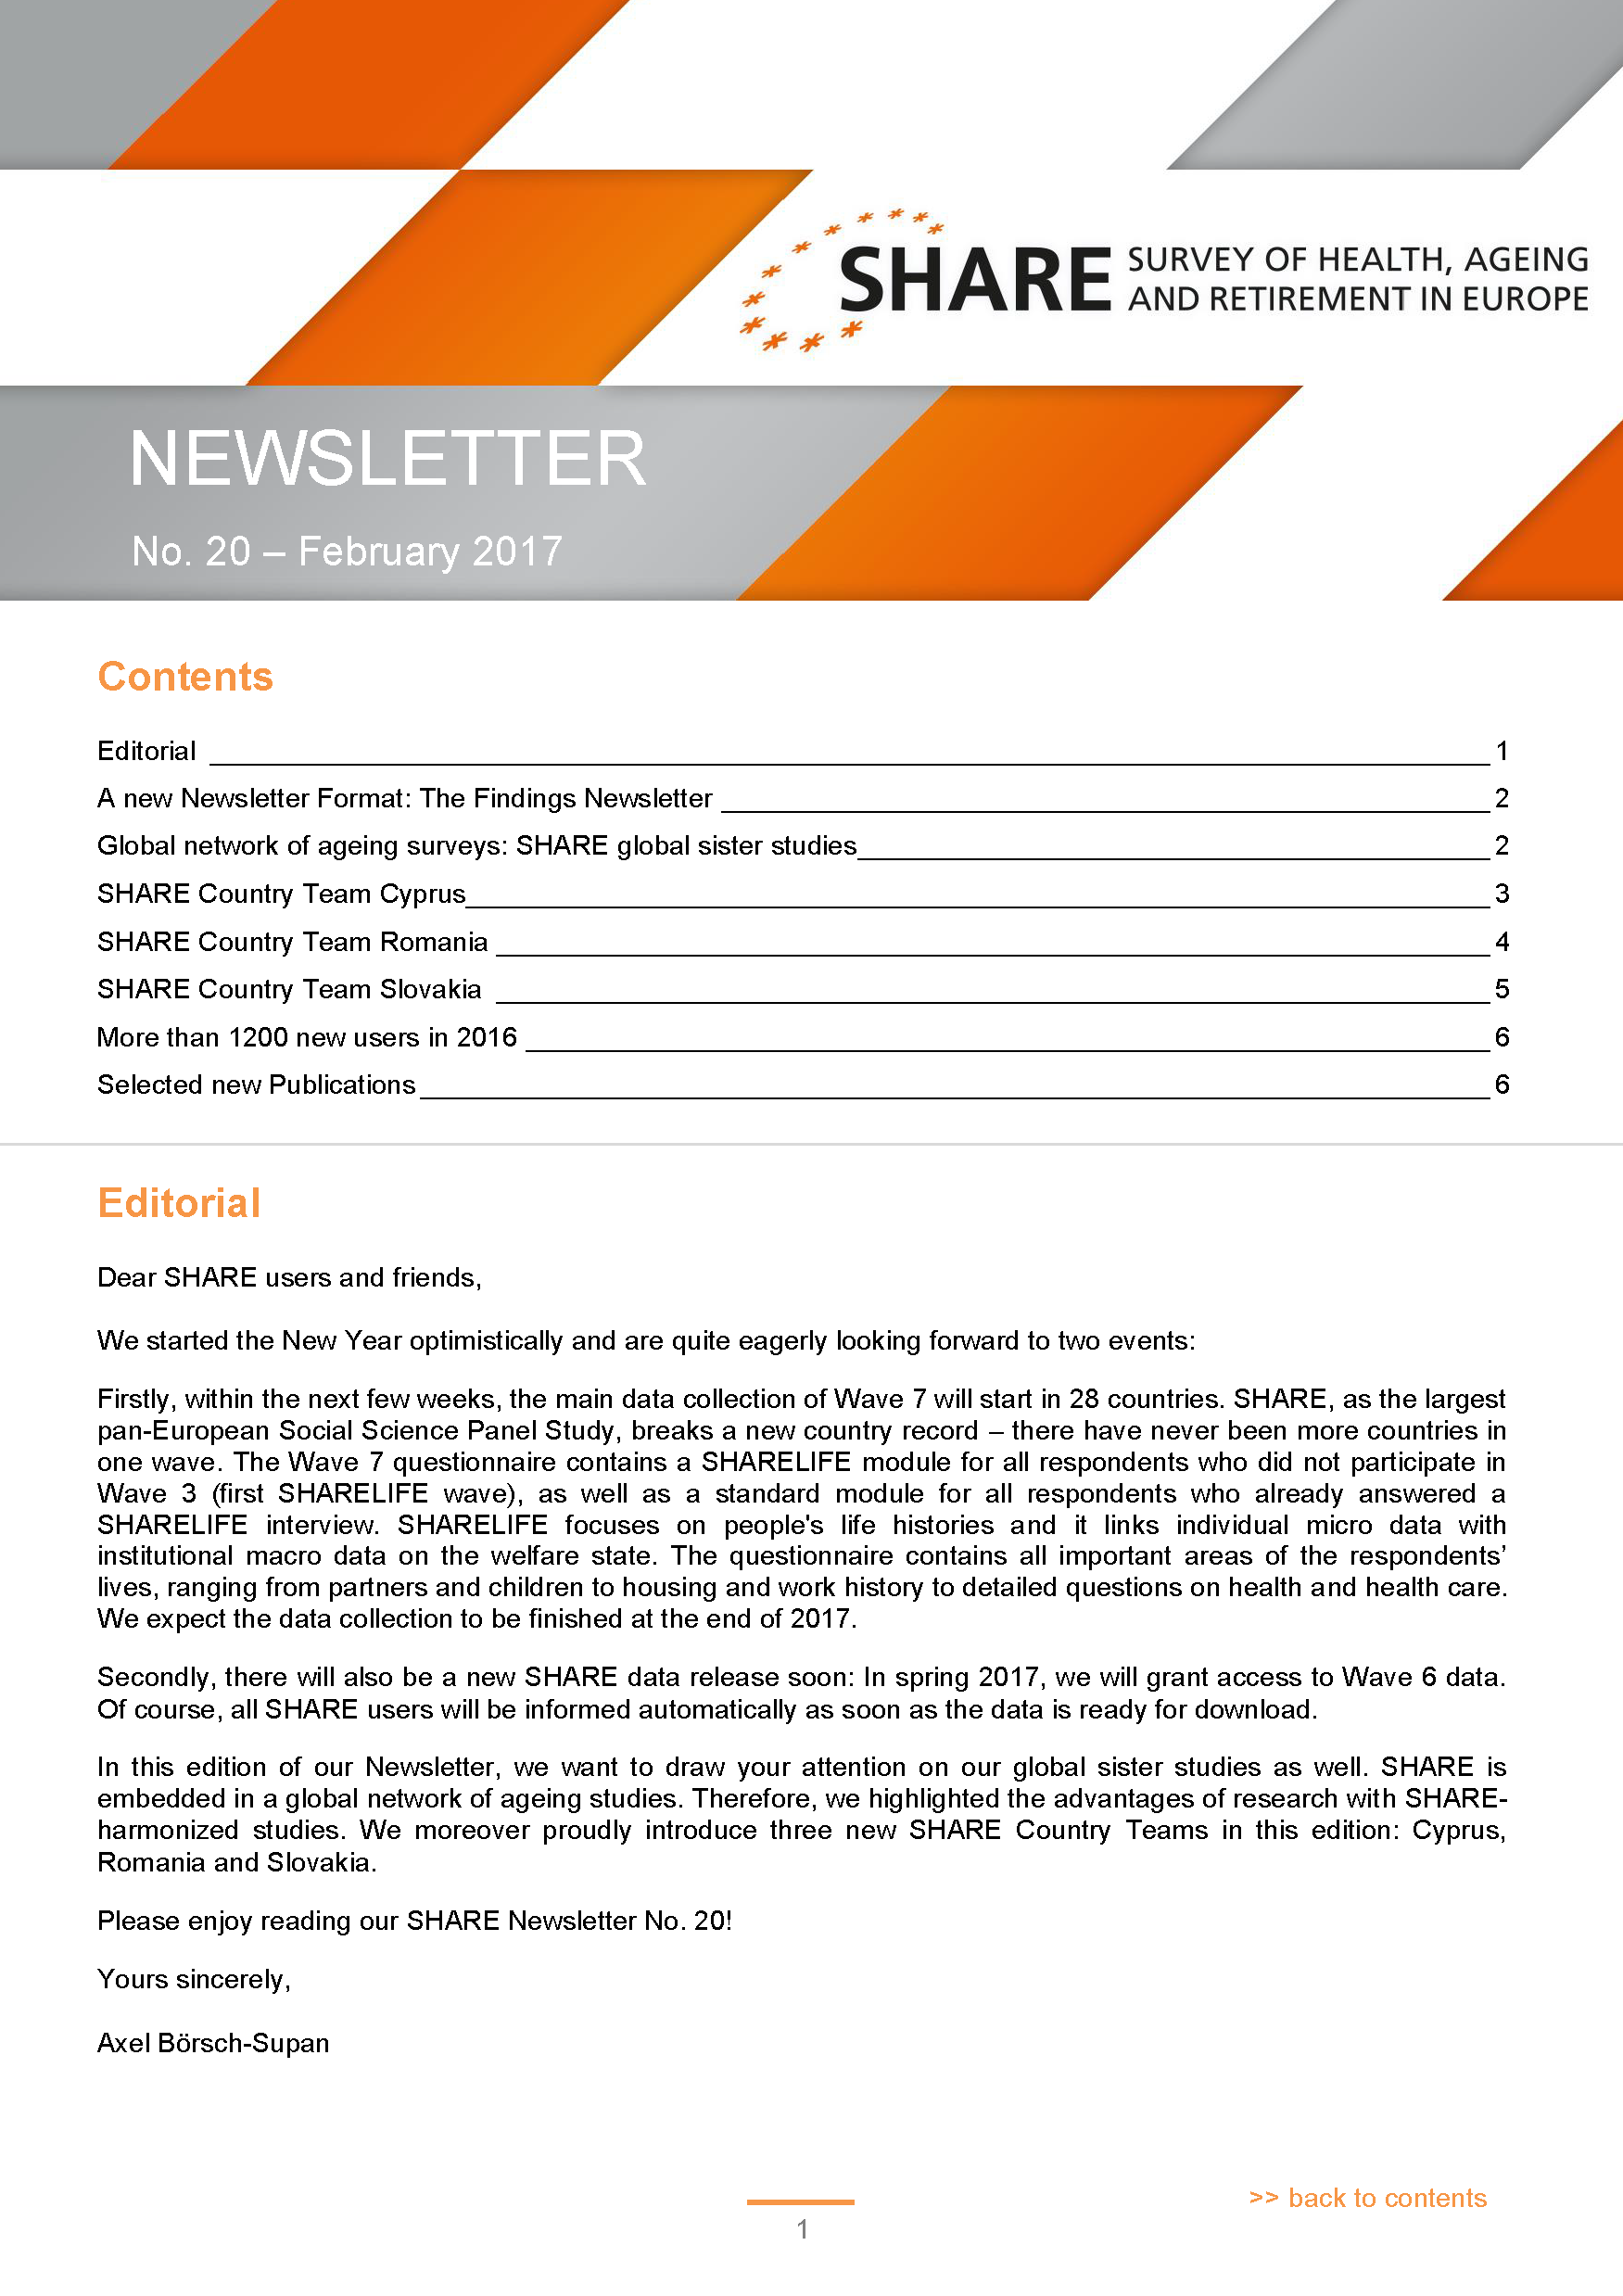 SHARE Newsletter No 20 Page 01